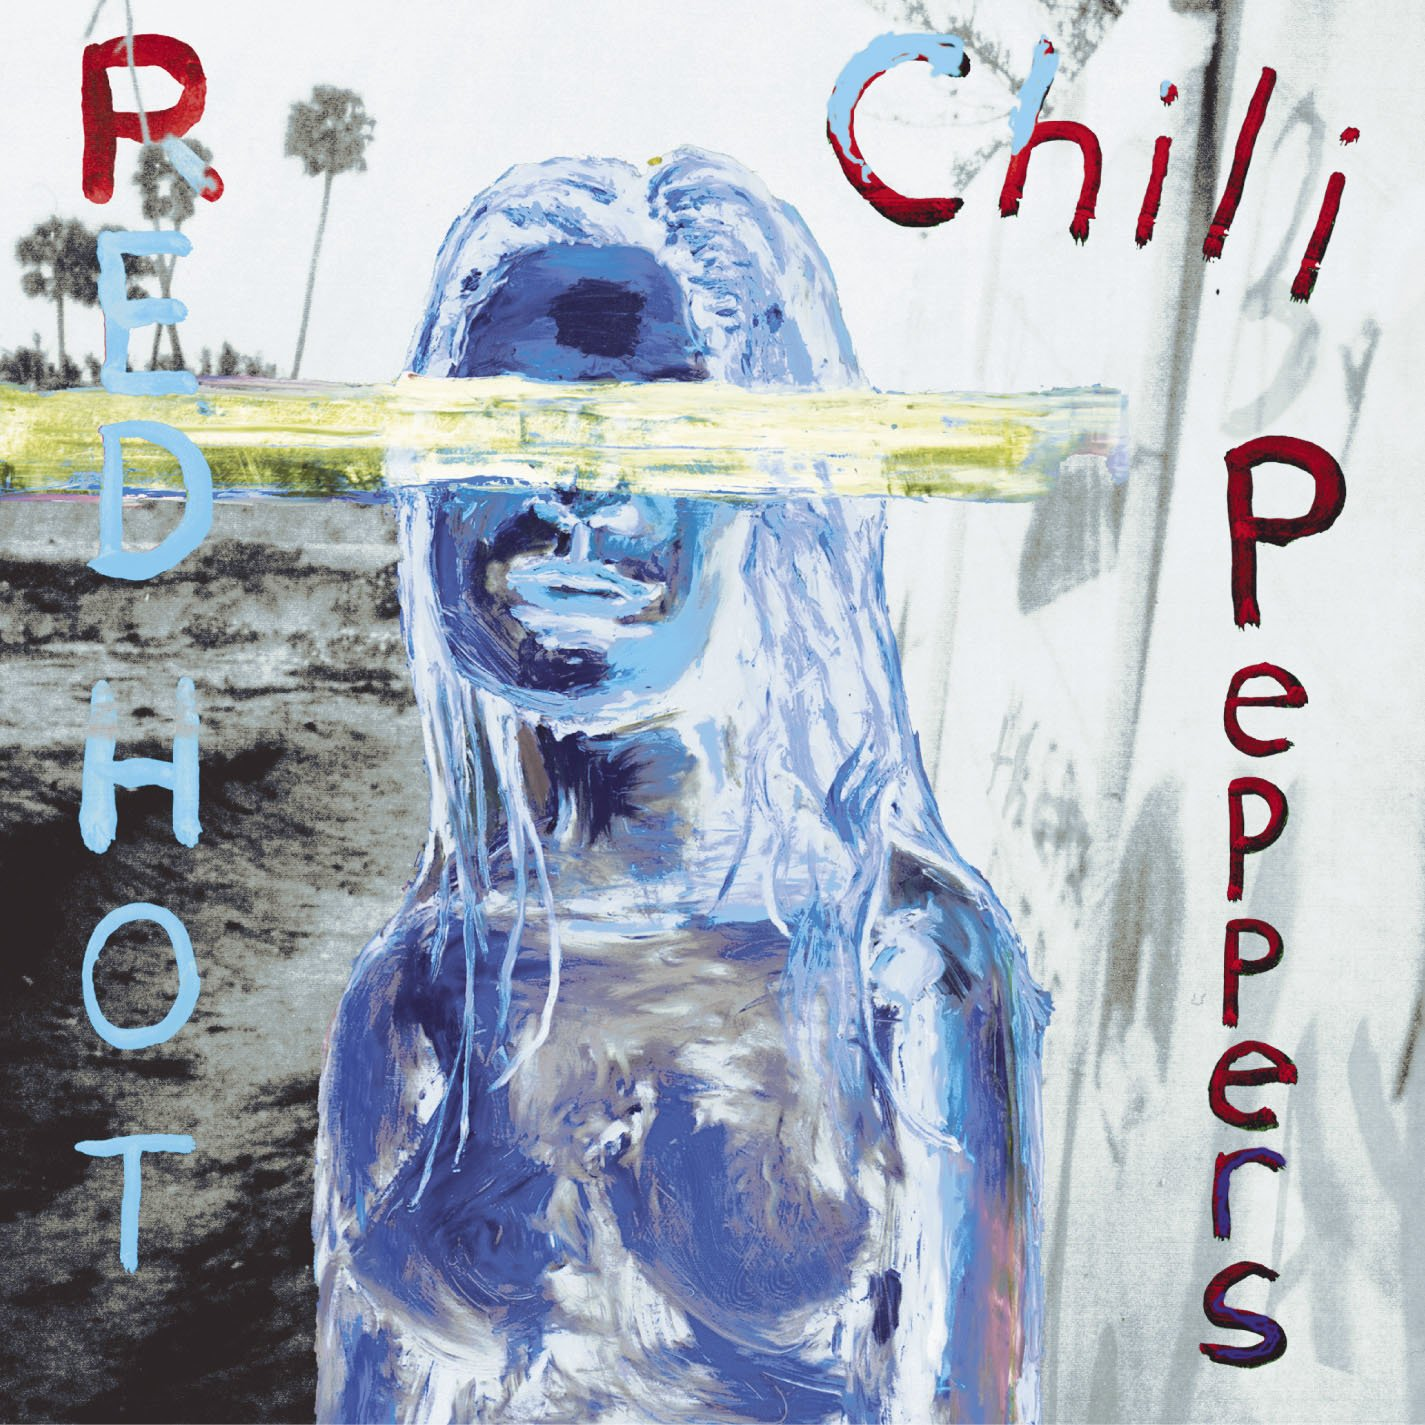 Risultato immagini per by the way red hot chili peppers